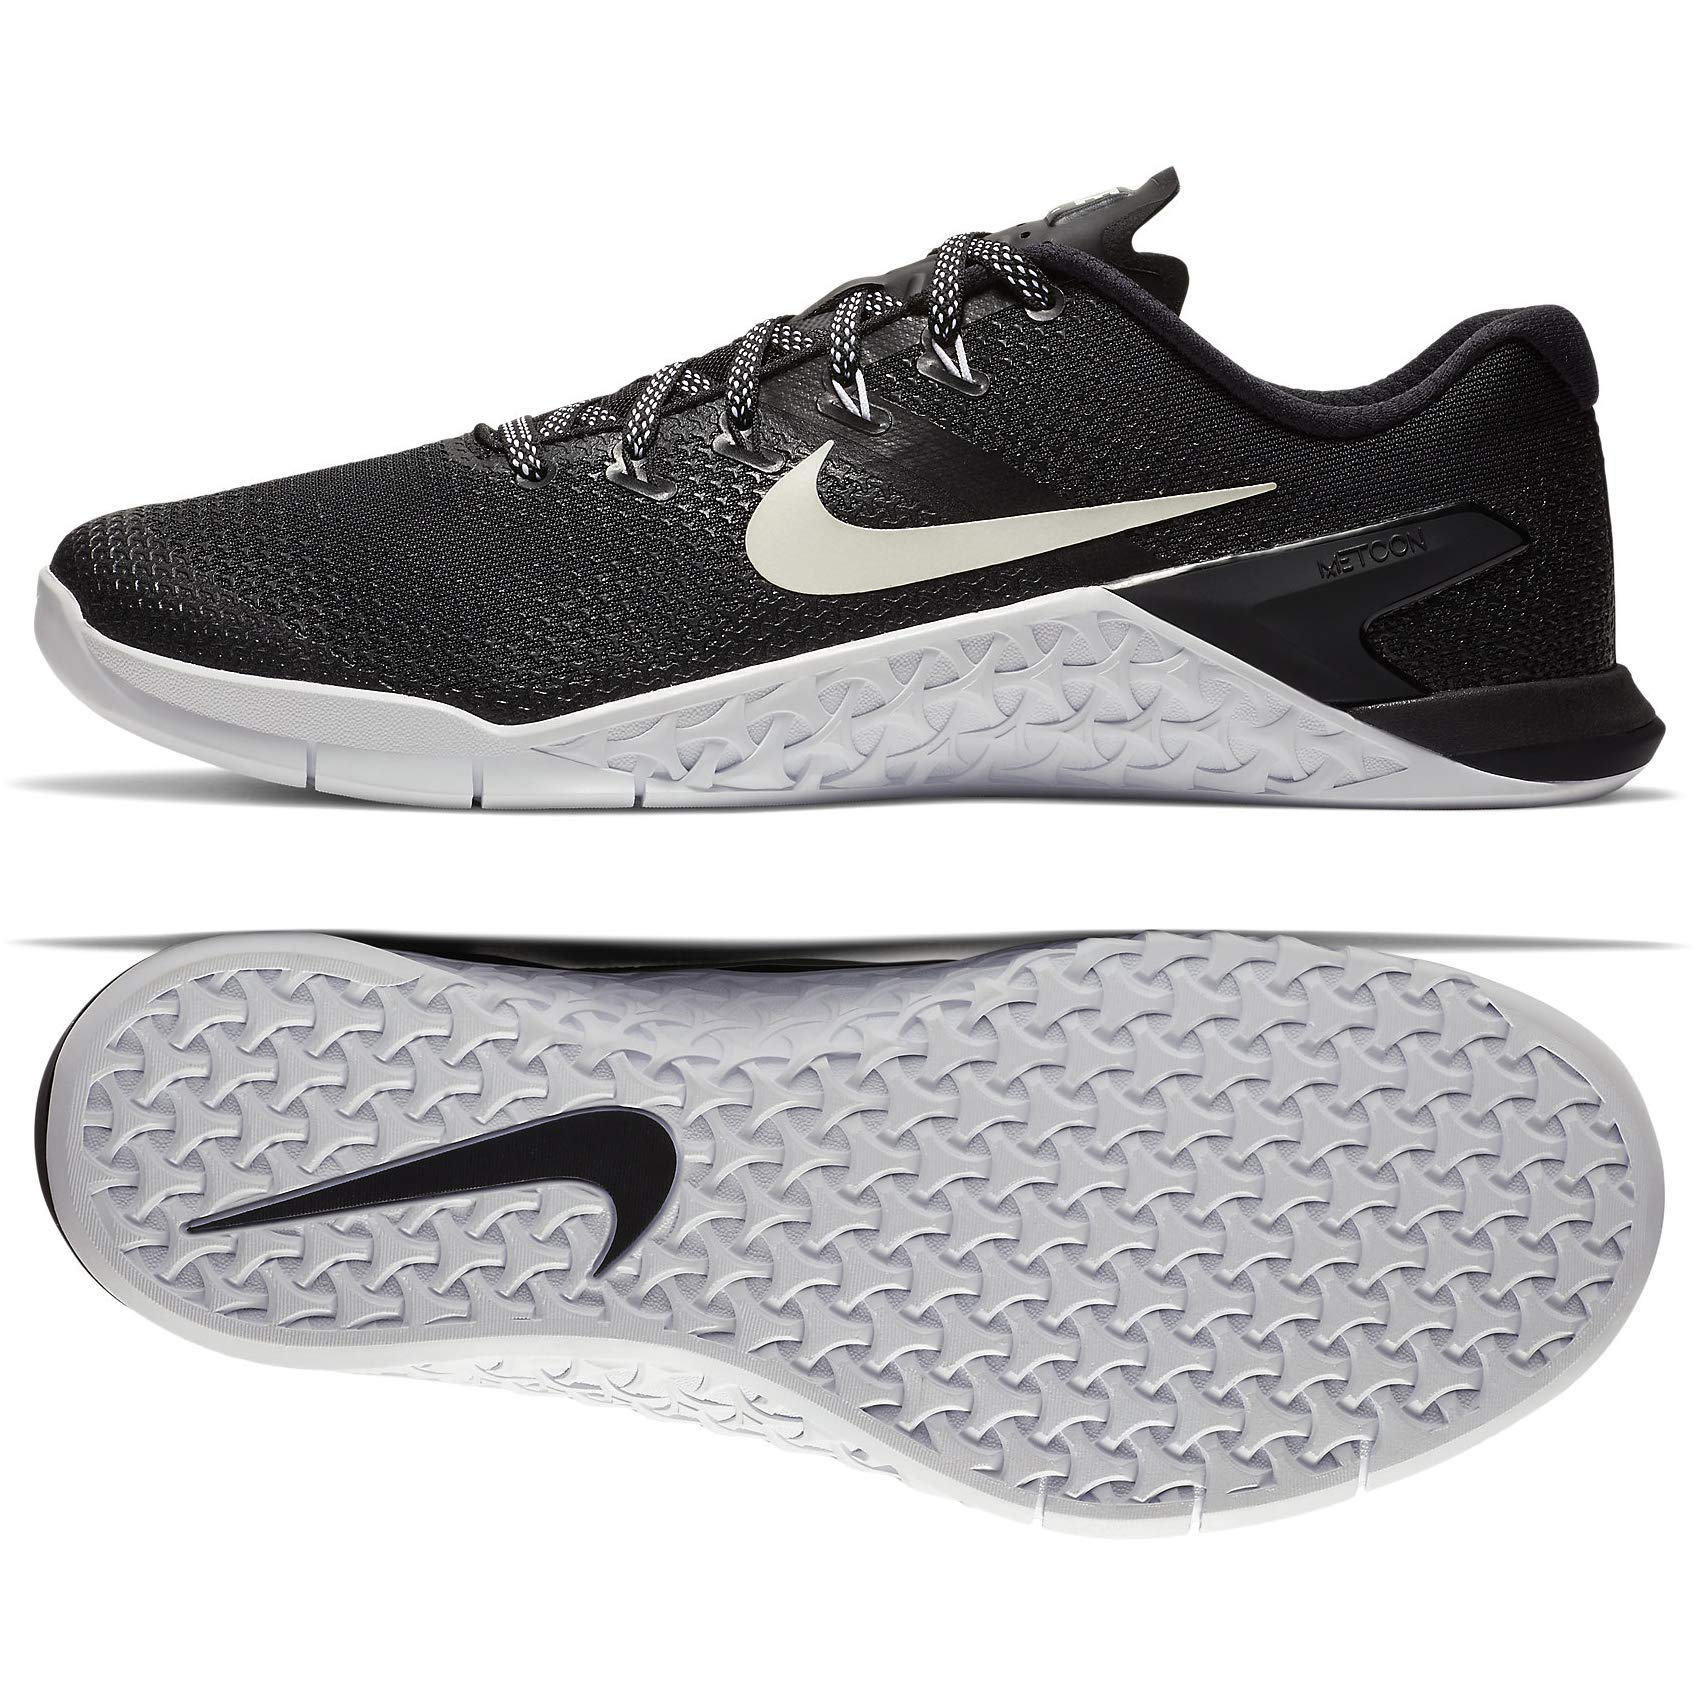 cheap for discount 3c27c a22b6 Galleon - Nike Men's Metcon 4 Training Shoes (9, Black/White/Yellow-M)